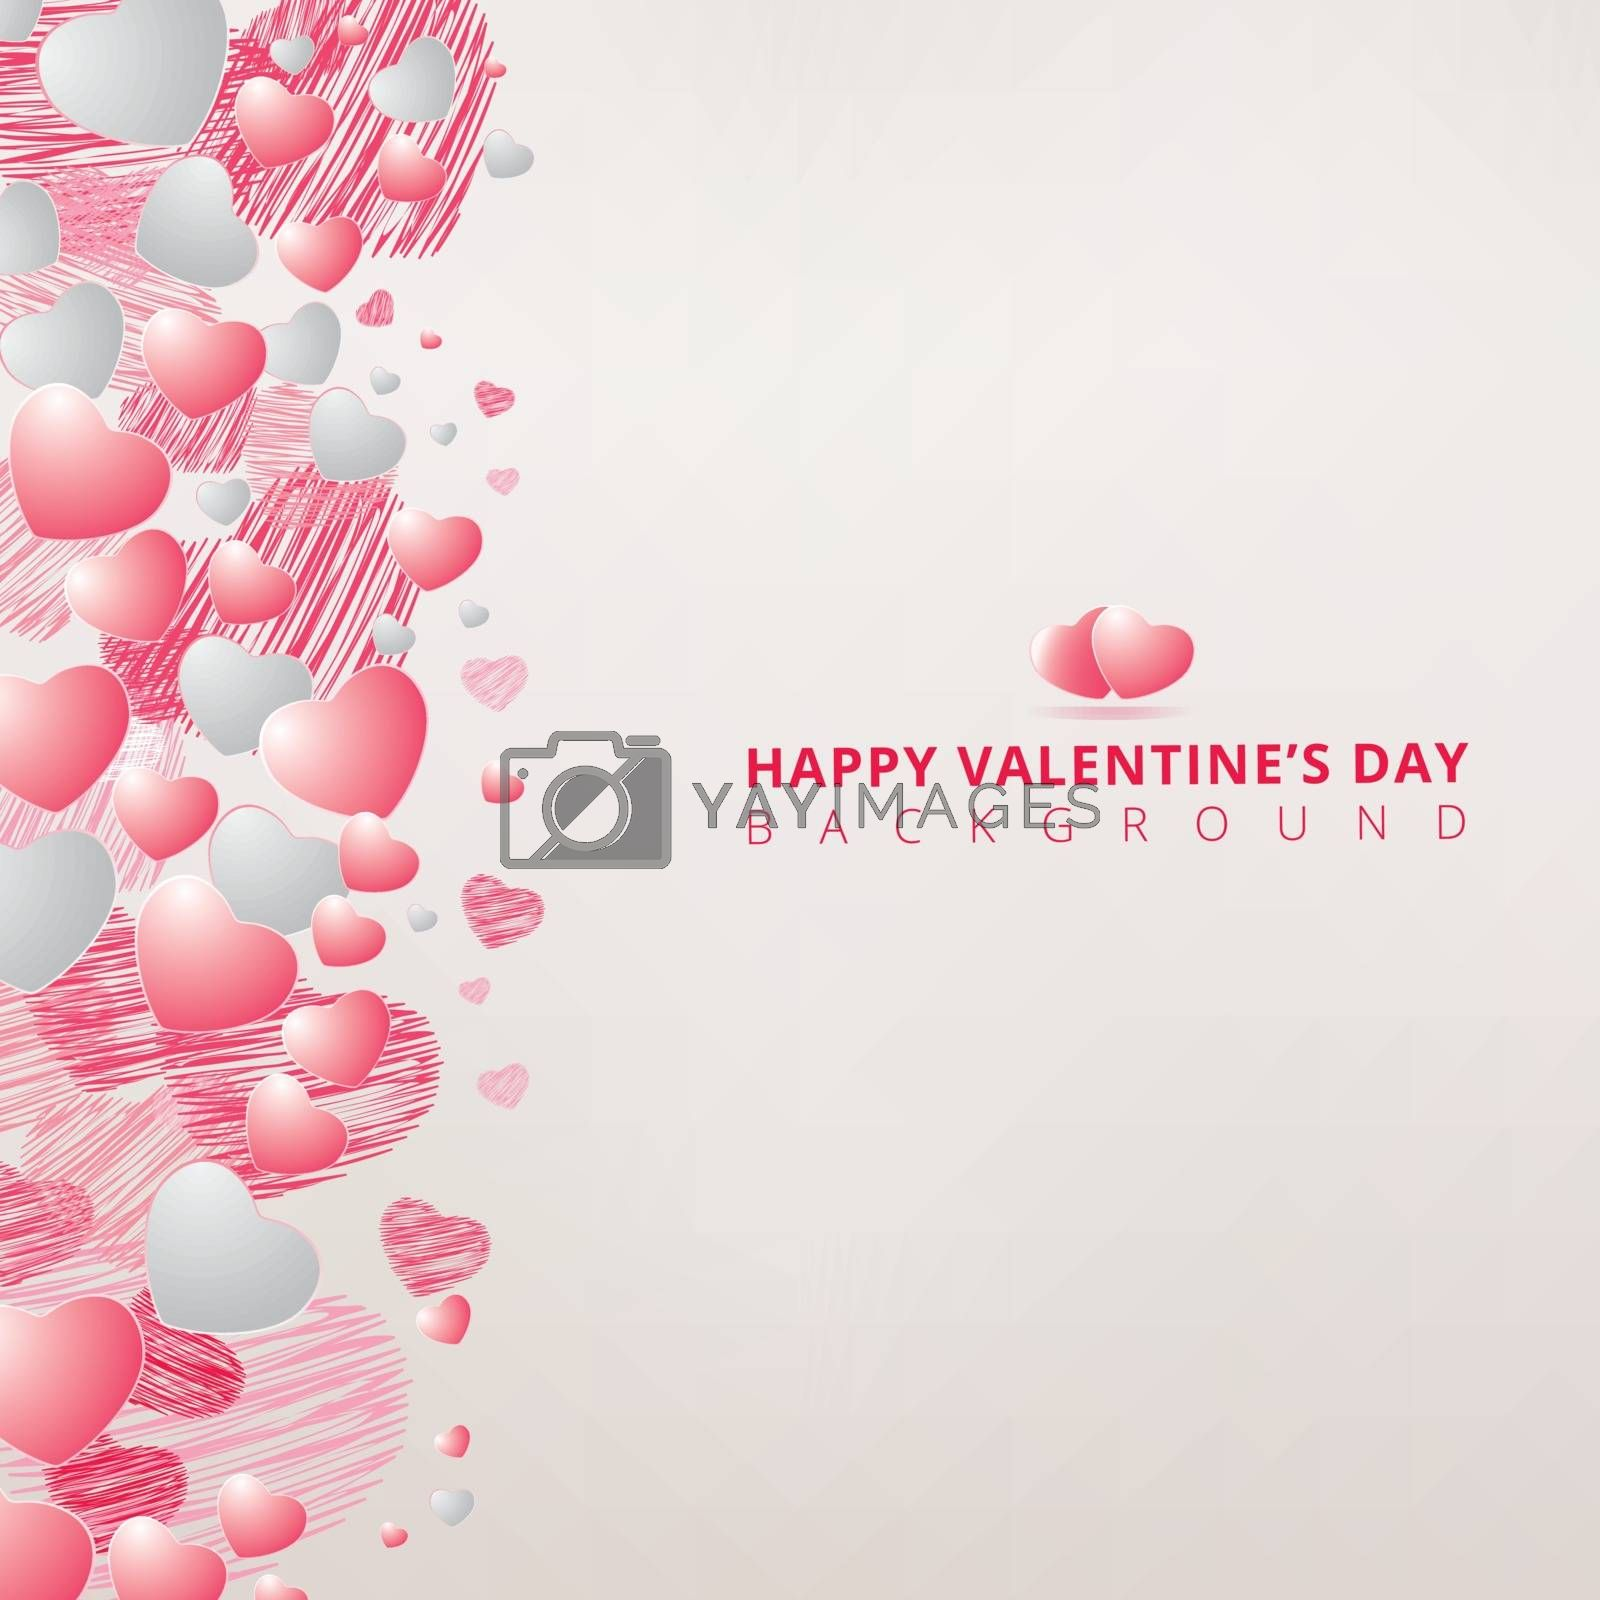 hand drawing hearts white and pink color on white background for valentines day copy space. Vector illustration